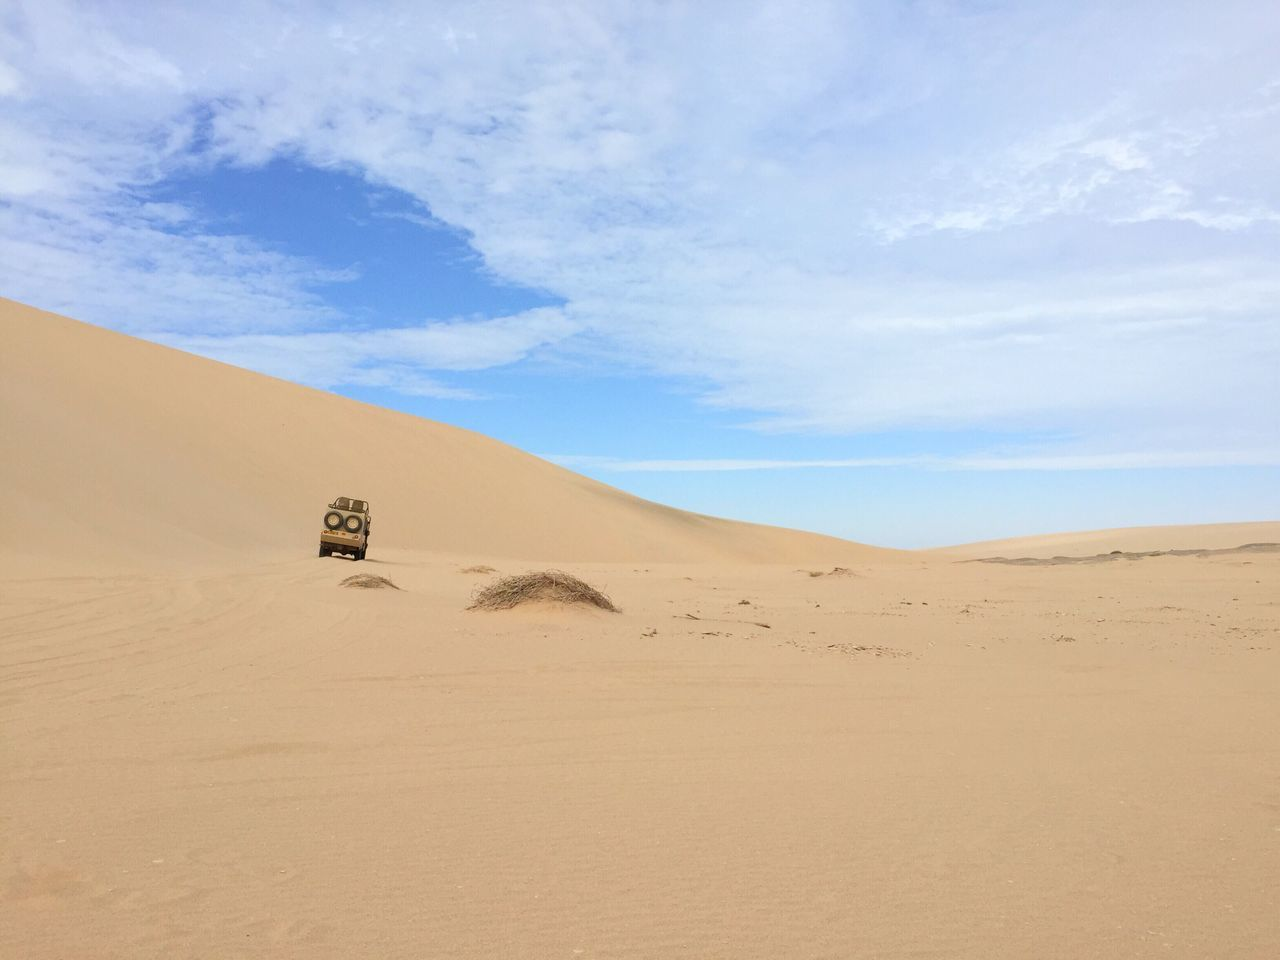 desert, sand dune, sand, sky, arid climate, nature, landscape, scenics, beauty in nature, tranquil scene, day, outdoors, tranquility, cloud - sky, blue, no people, mammal